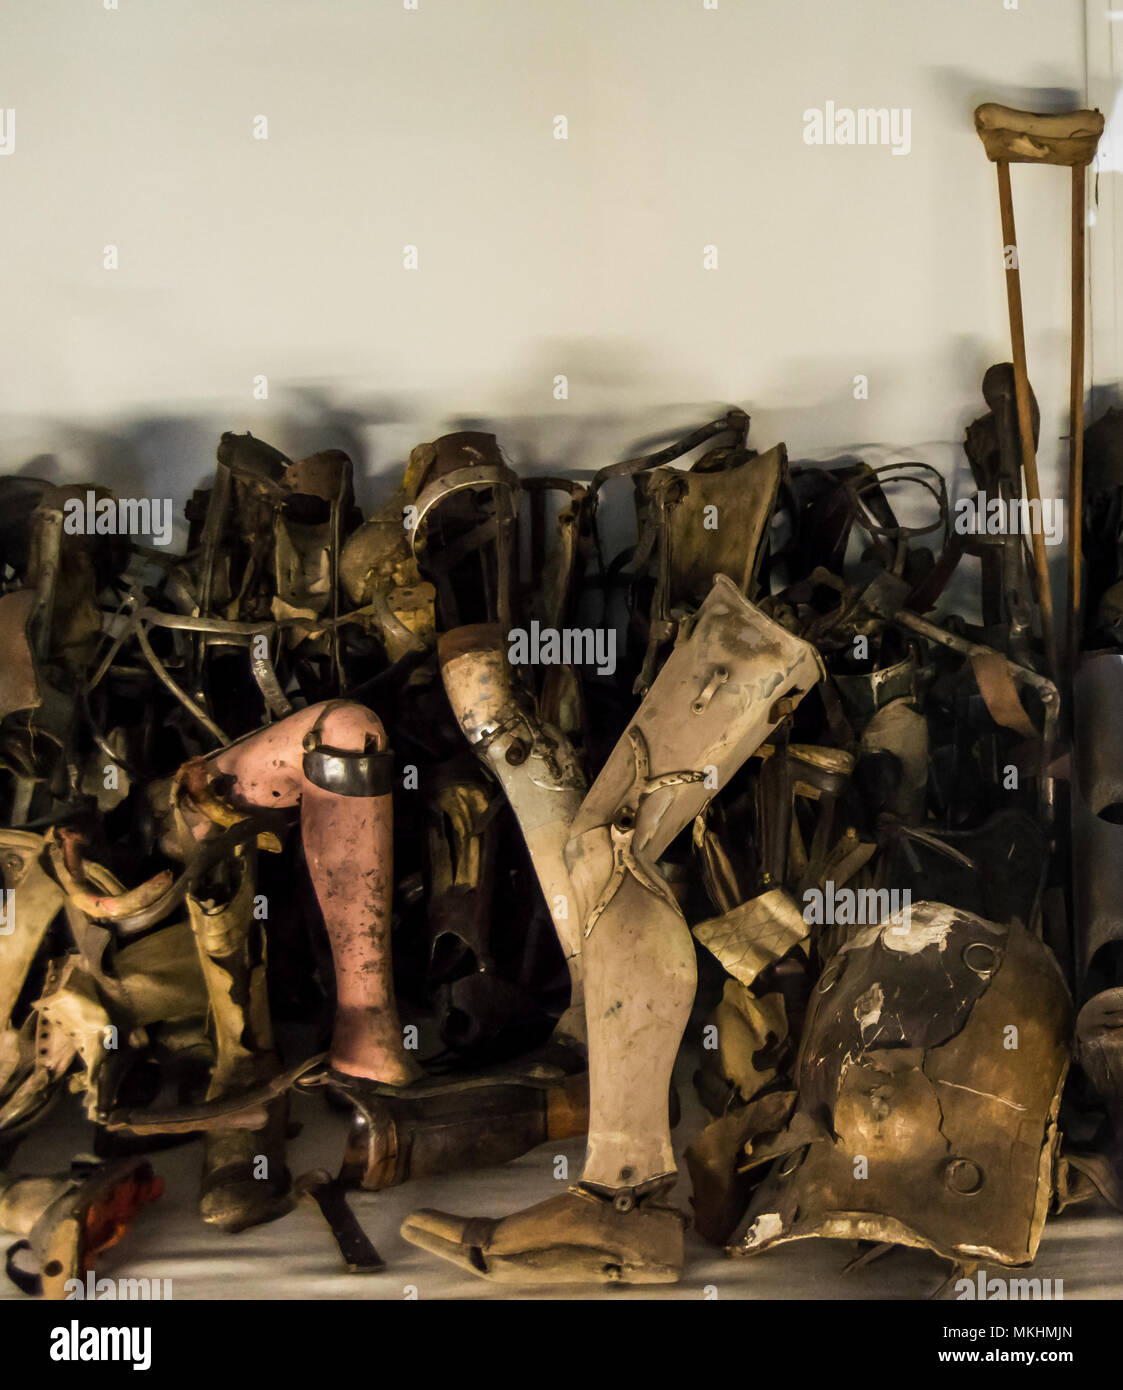 Collection of prosthesis removed from prisoners at Auschwitz, nazi concentration camp in Poland. - Stock Image